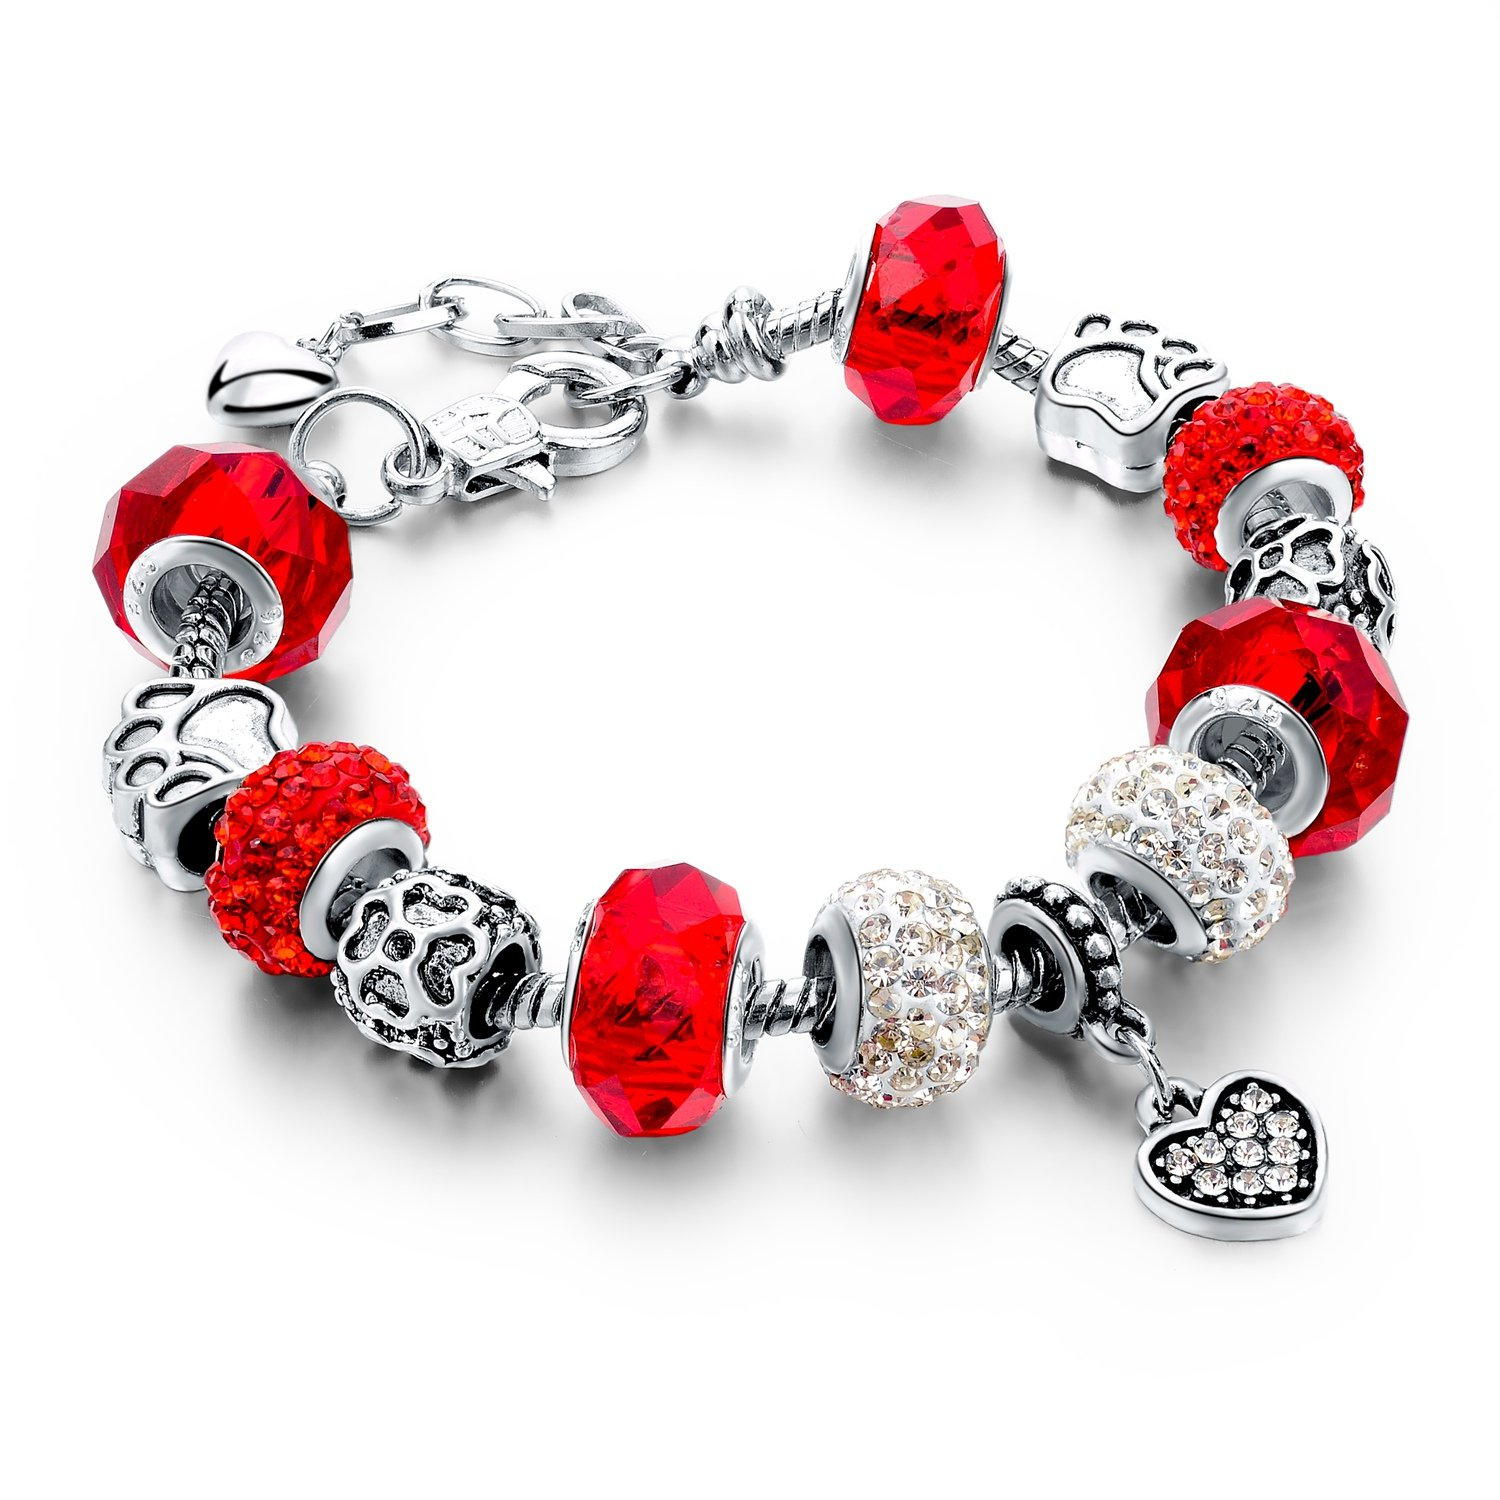 Long Way Silver Plated Snake Chain Red Glass Crystal Beads Heart Charm Bracelet for Women